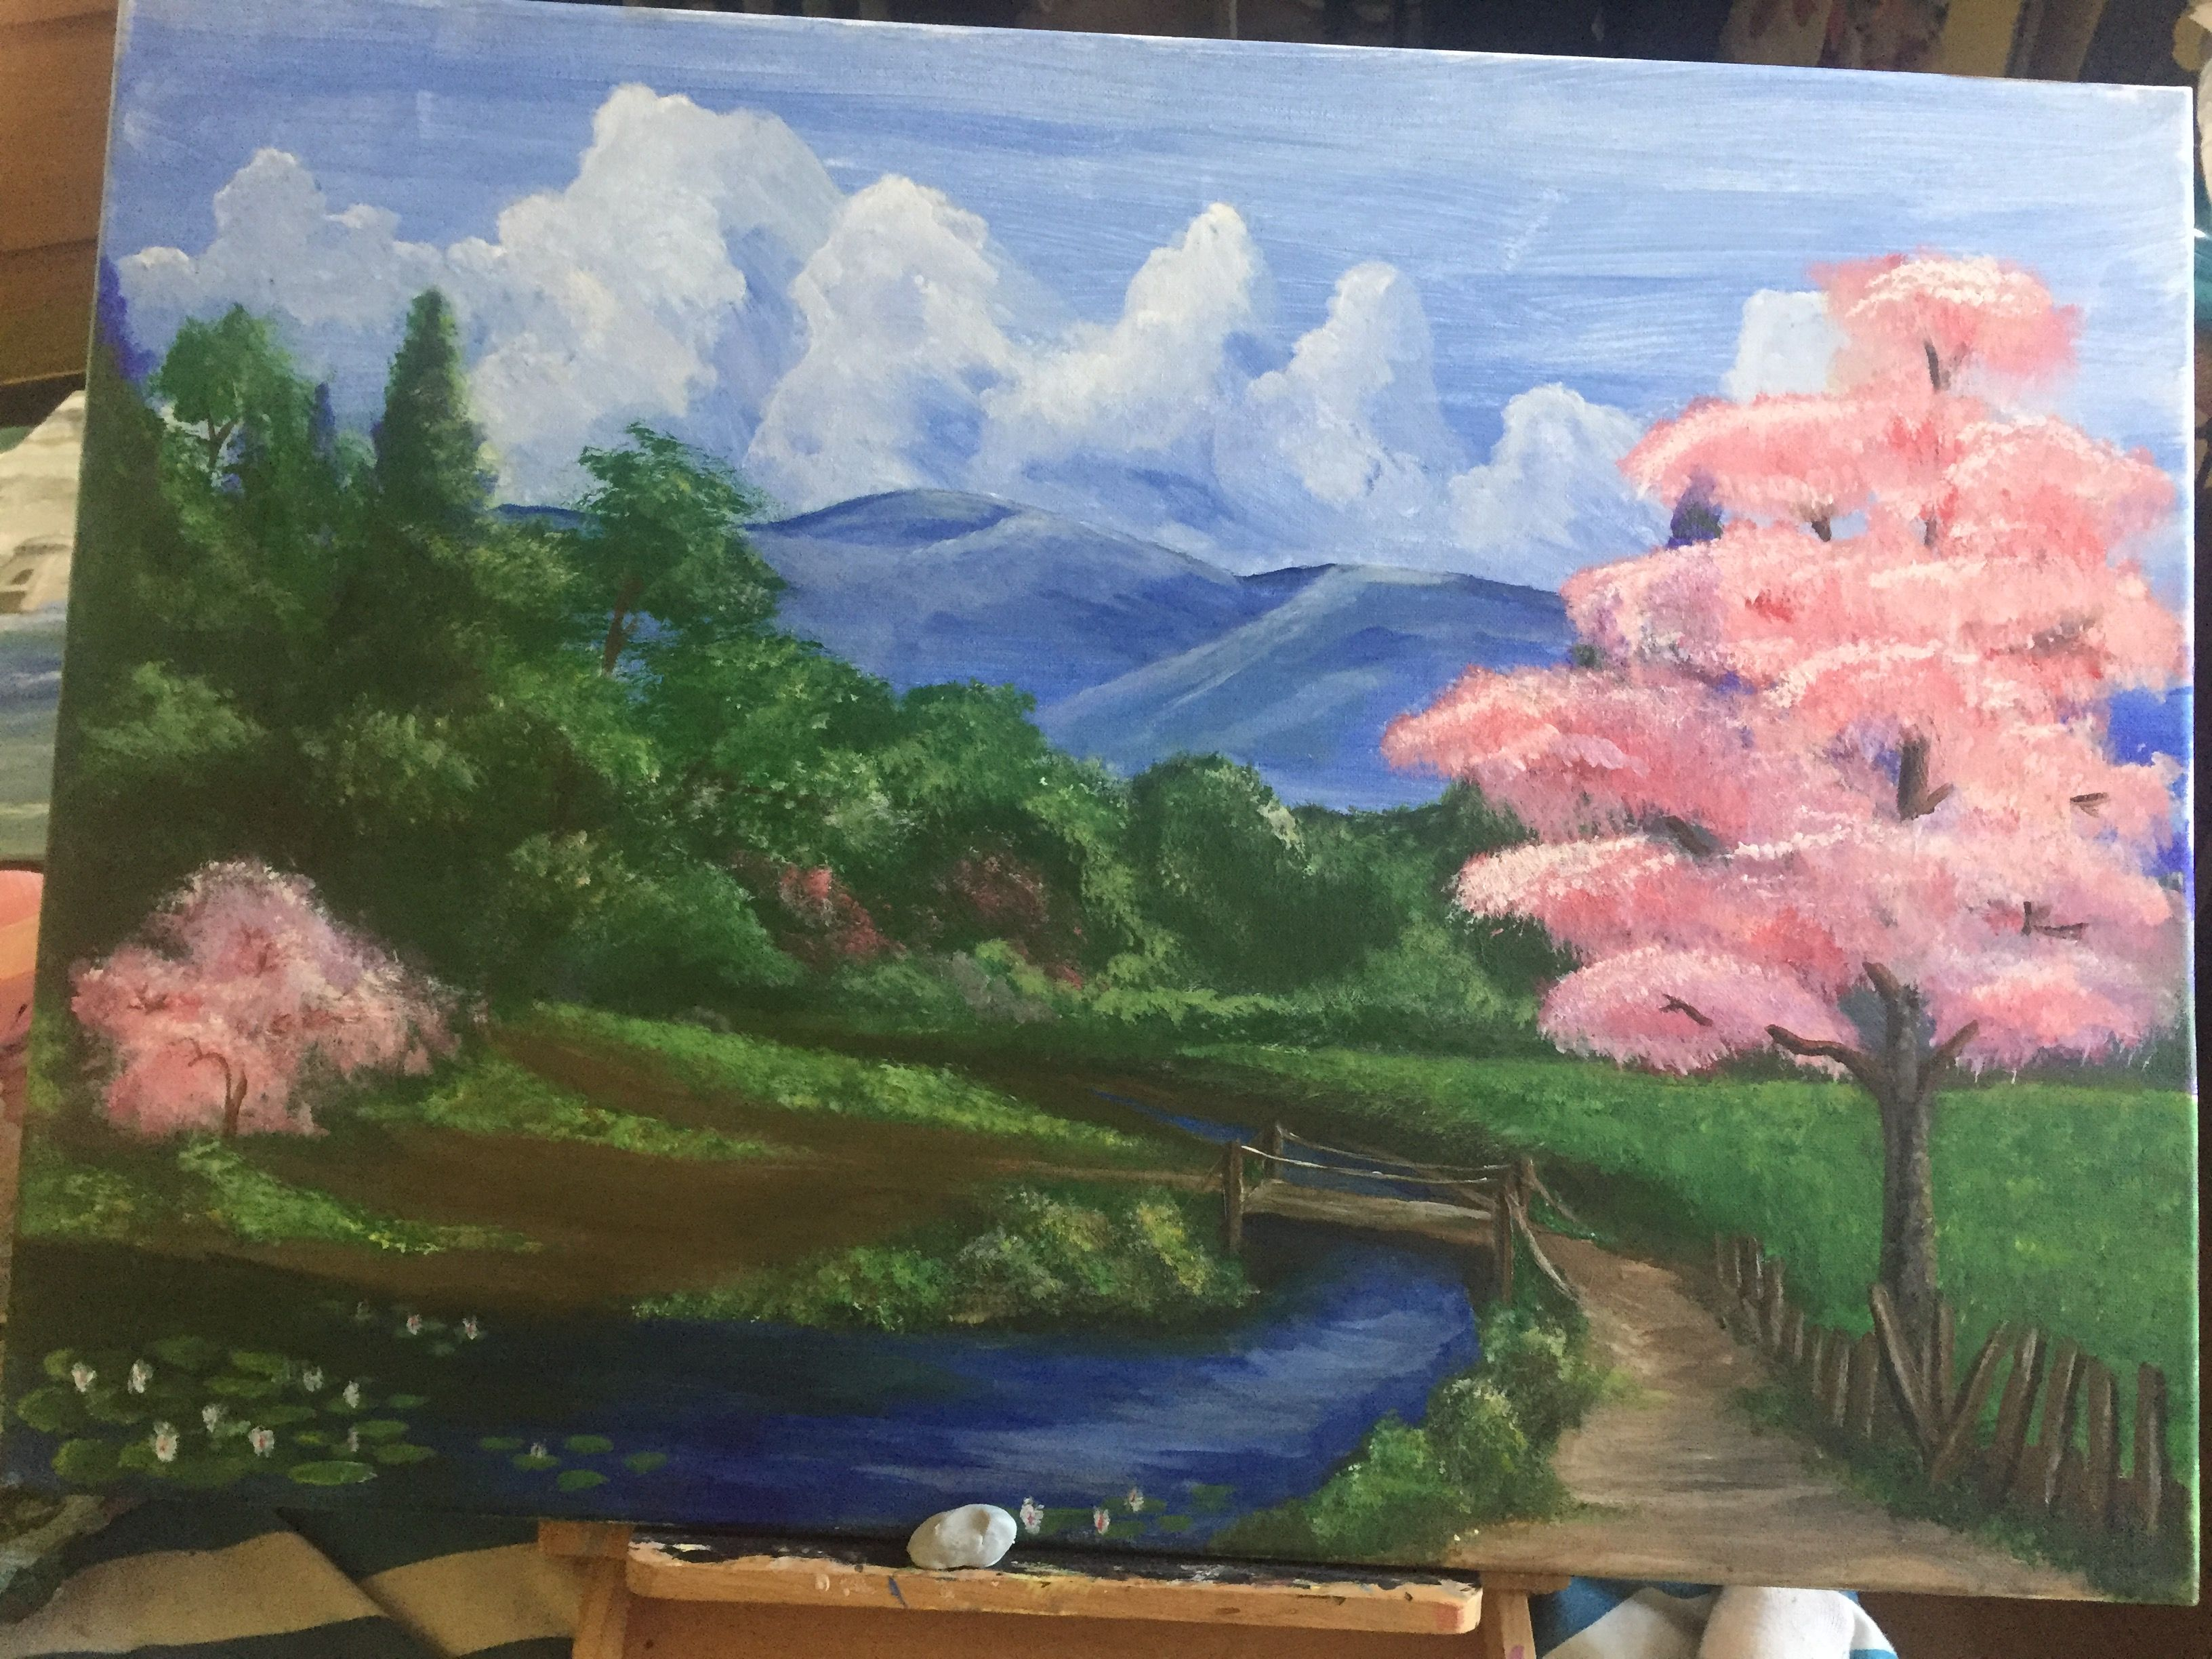 My 1st scenery painting. And was done in acrylic on canvas